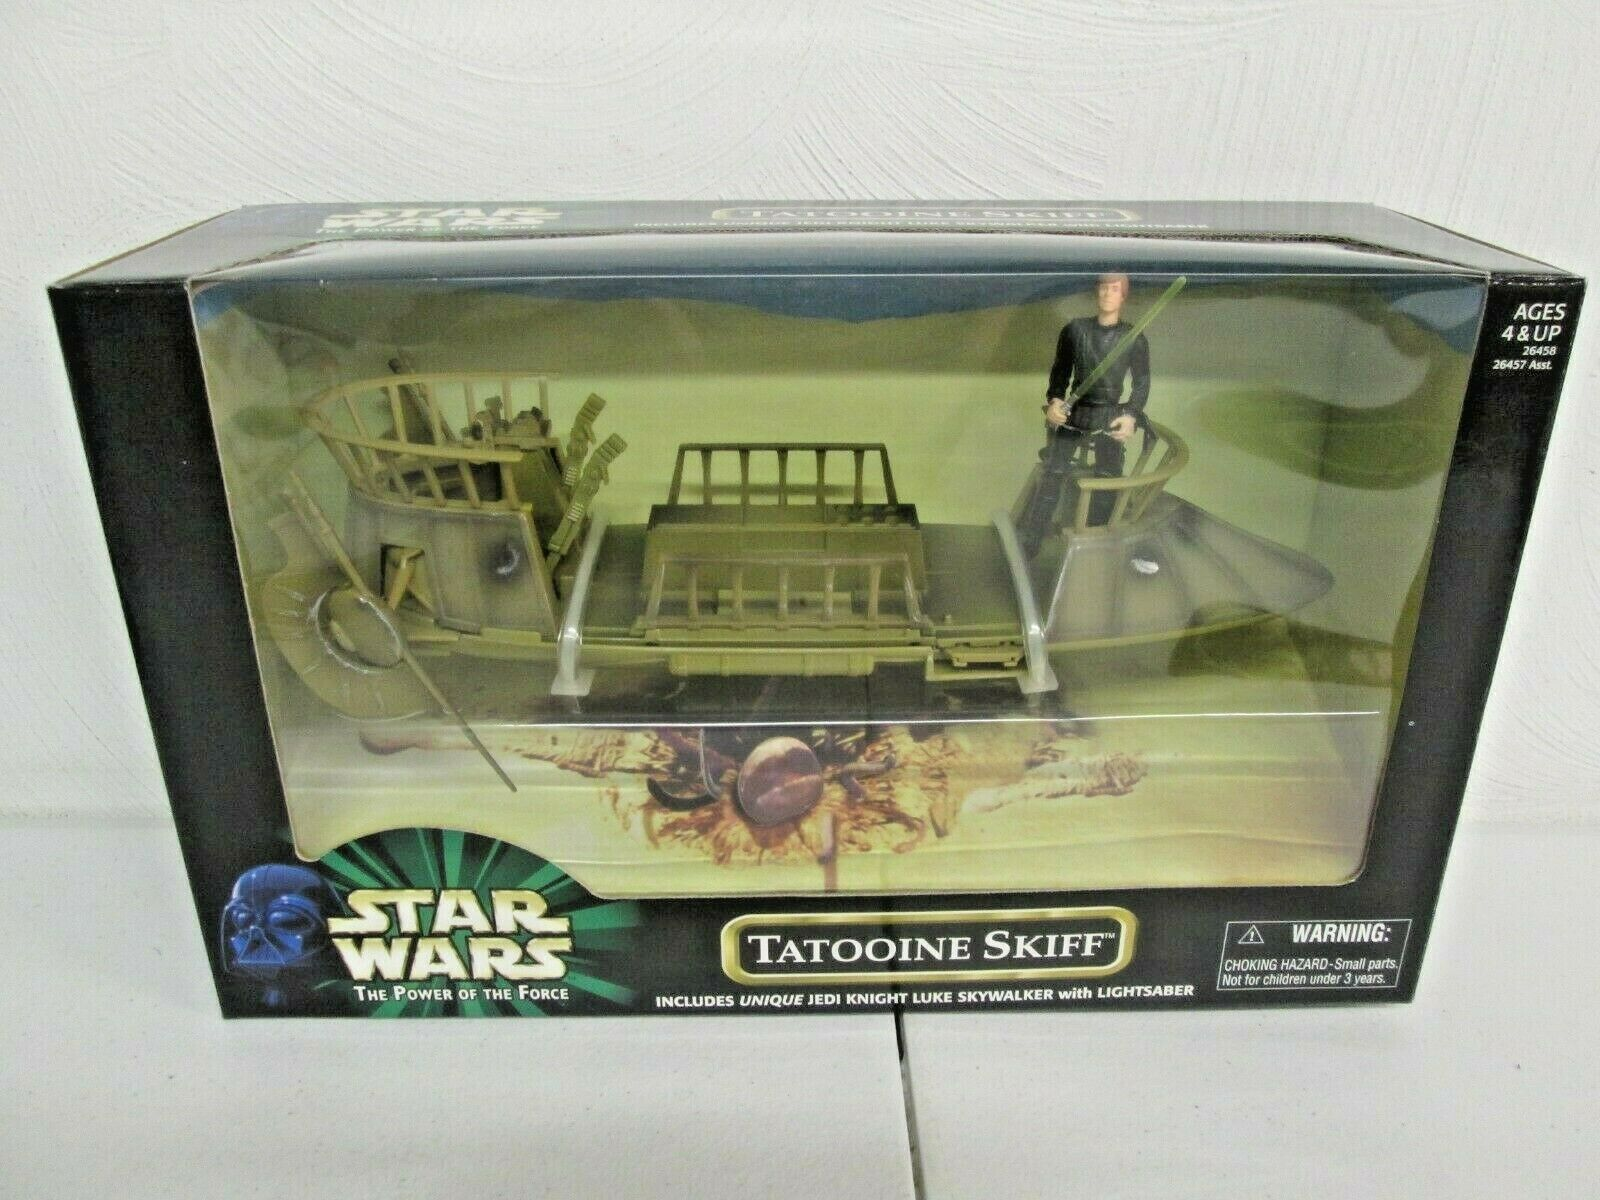 HASBRO - STAR WARS POWER OF THE FORCE - TATOOINE SKIFF - NEW    (A)